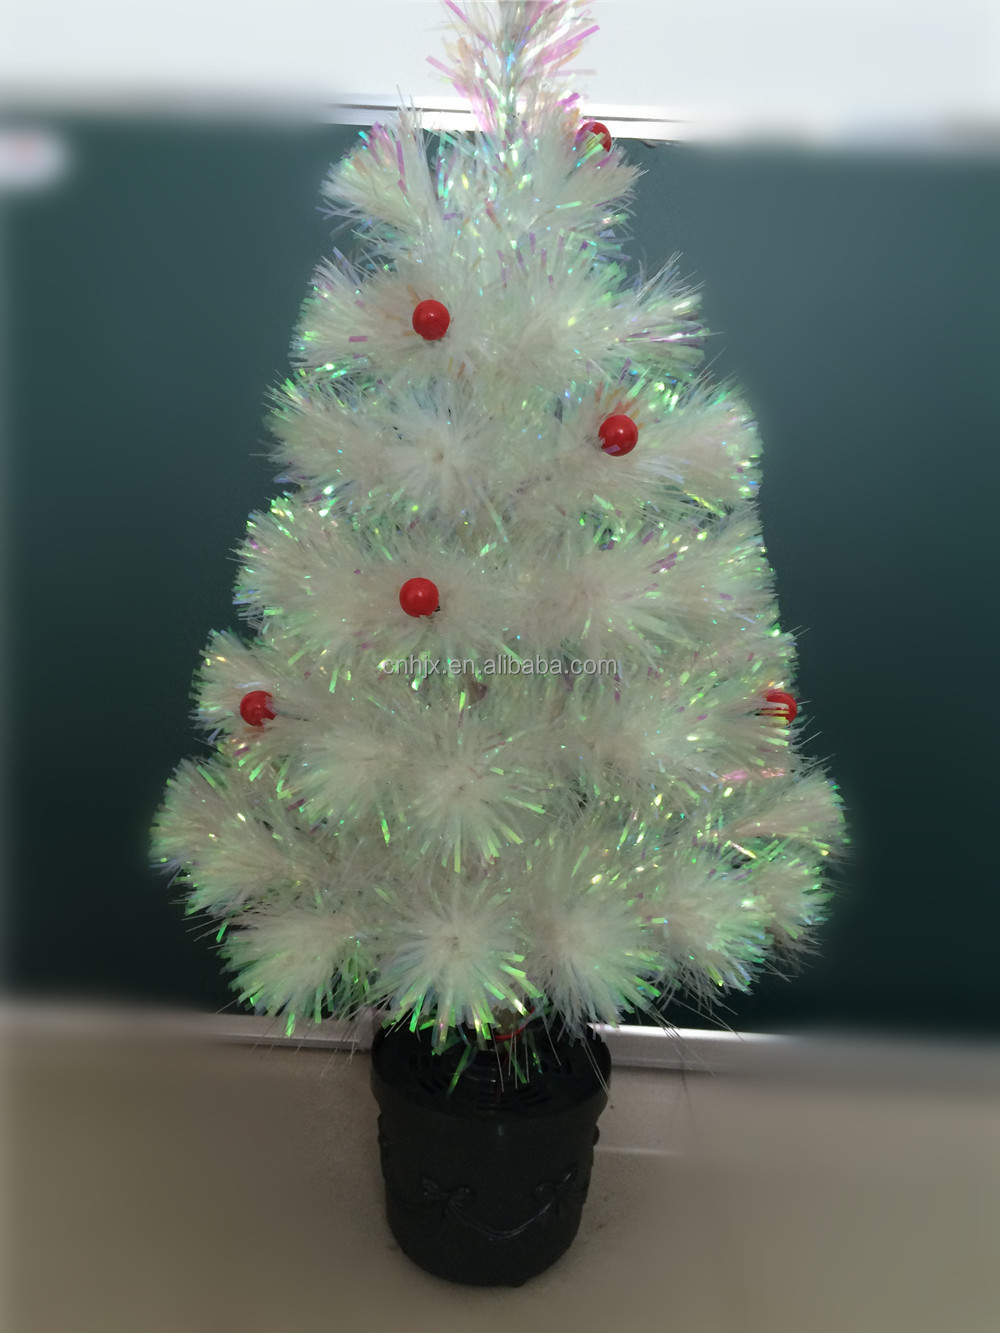 Promotional Pre Lit Mini White Christmas Tree With Red Berries And Durable Crismas